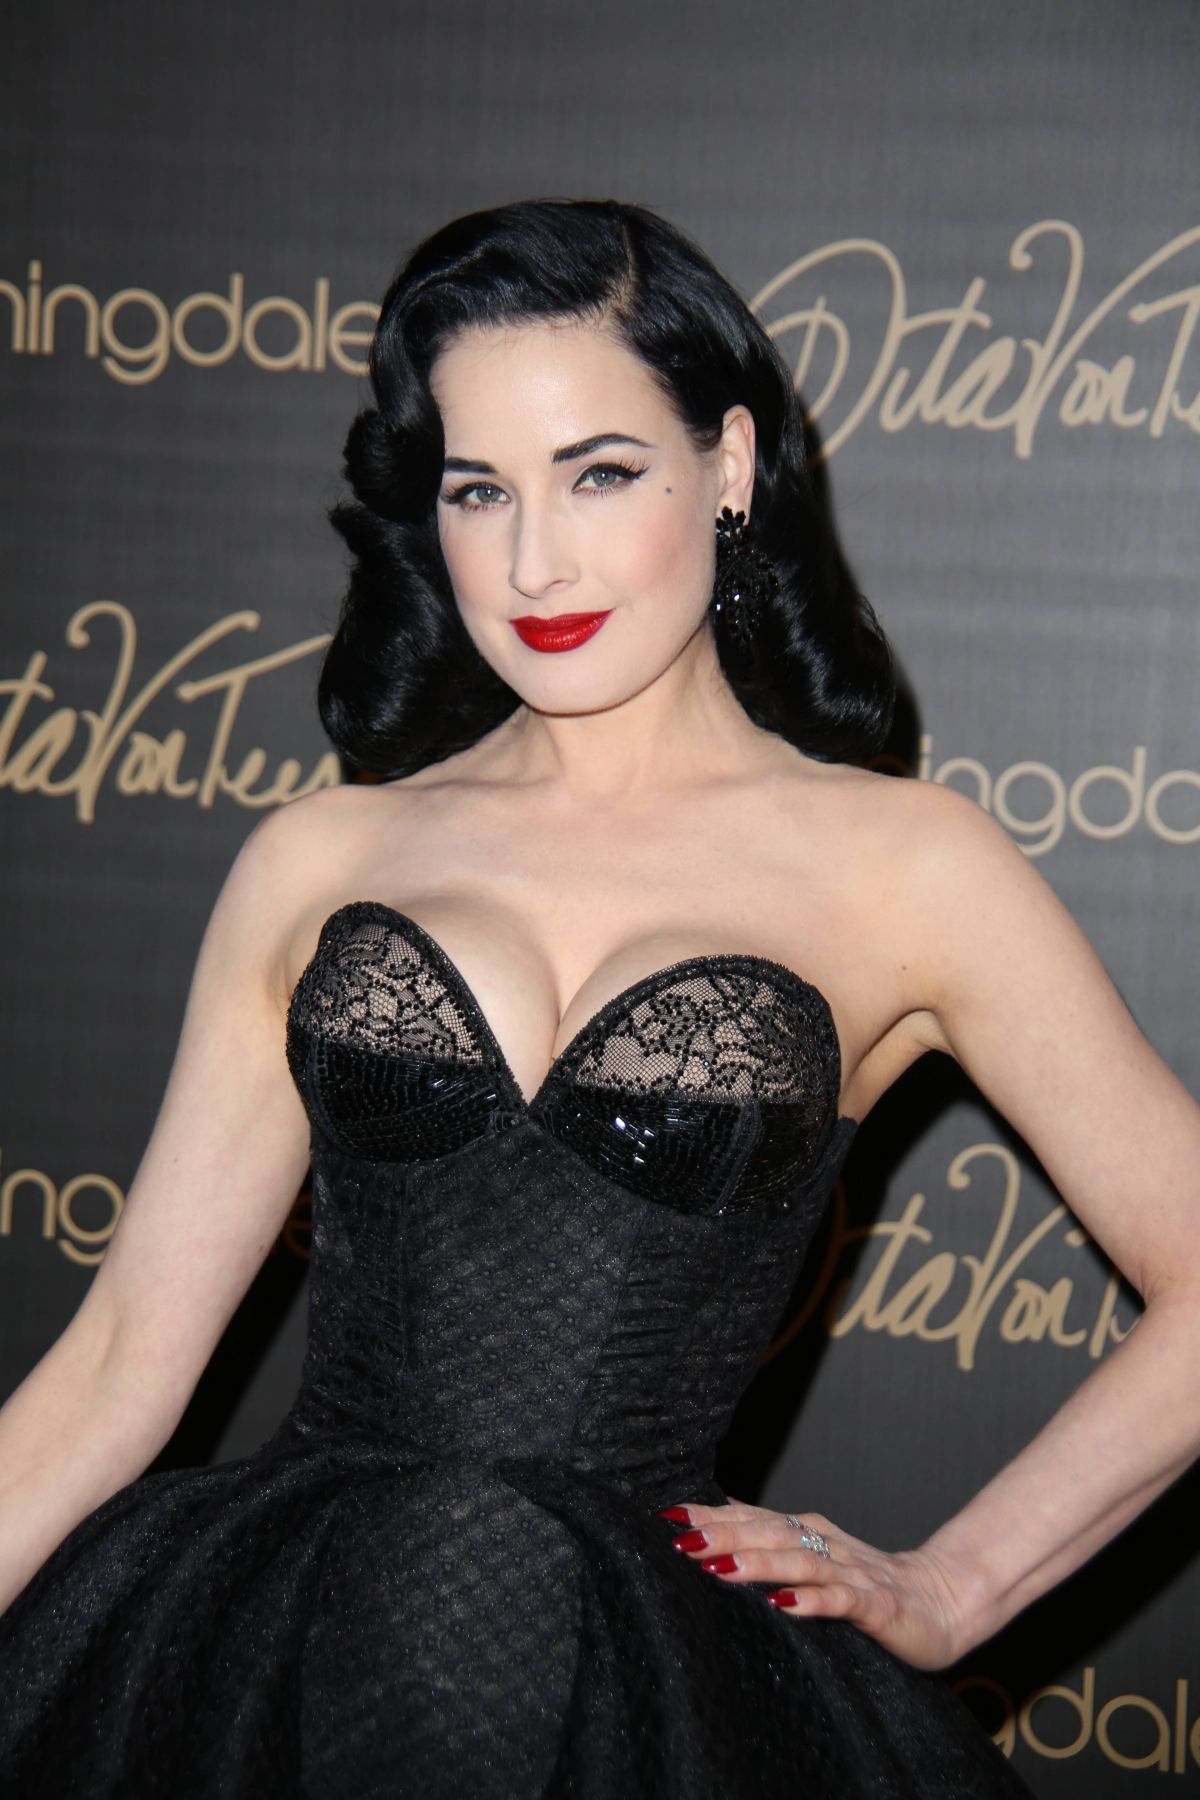 6e6d6a5c4cd DITA VON TEESE Launch Her Lingerie Line in New York - HawtCelebs